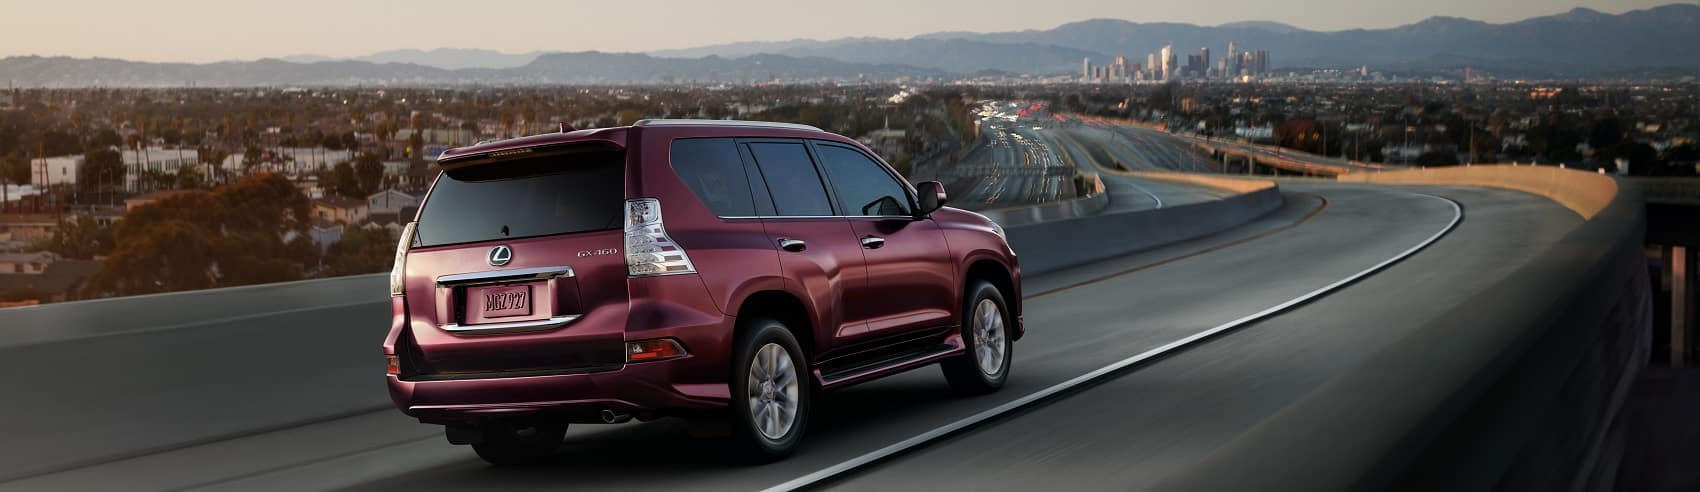 2020 Lexus GX red driving down the highway